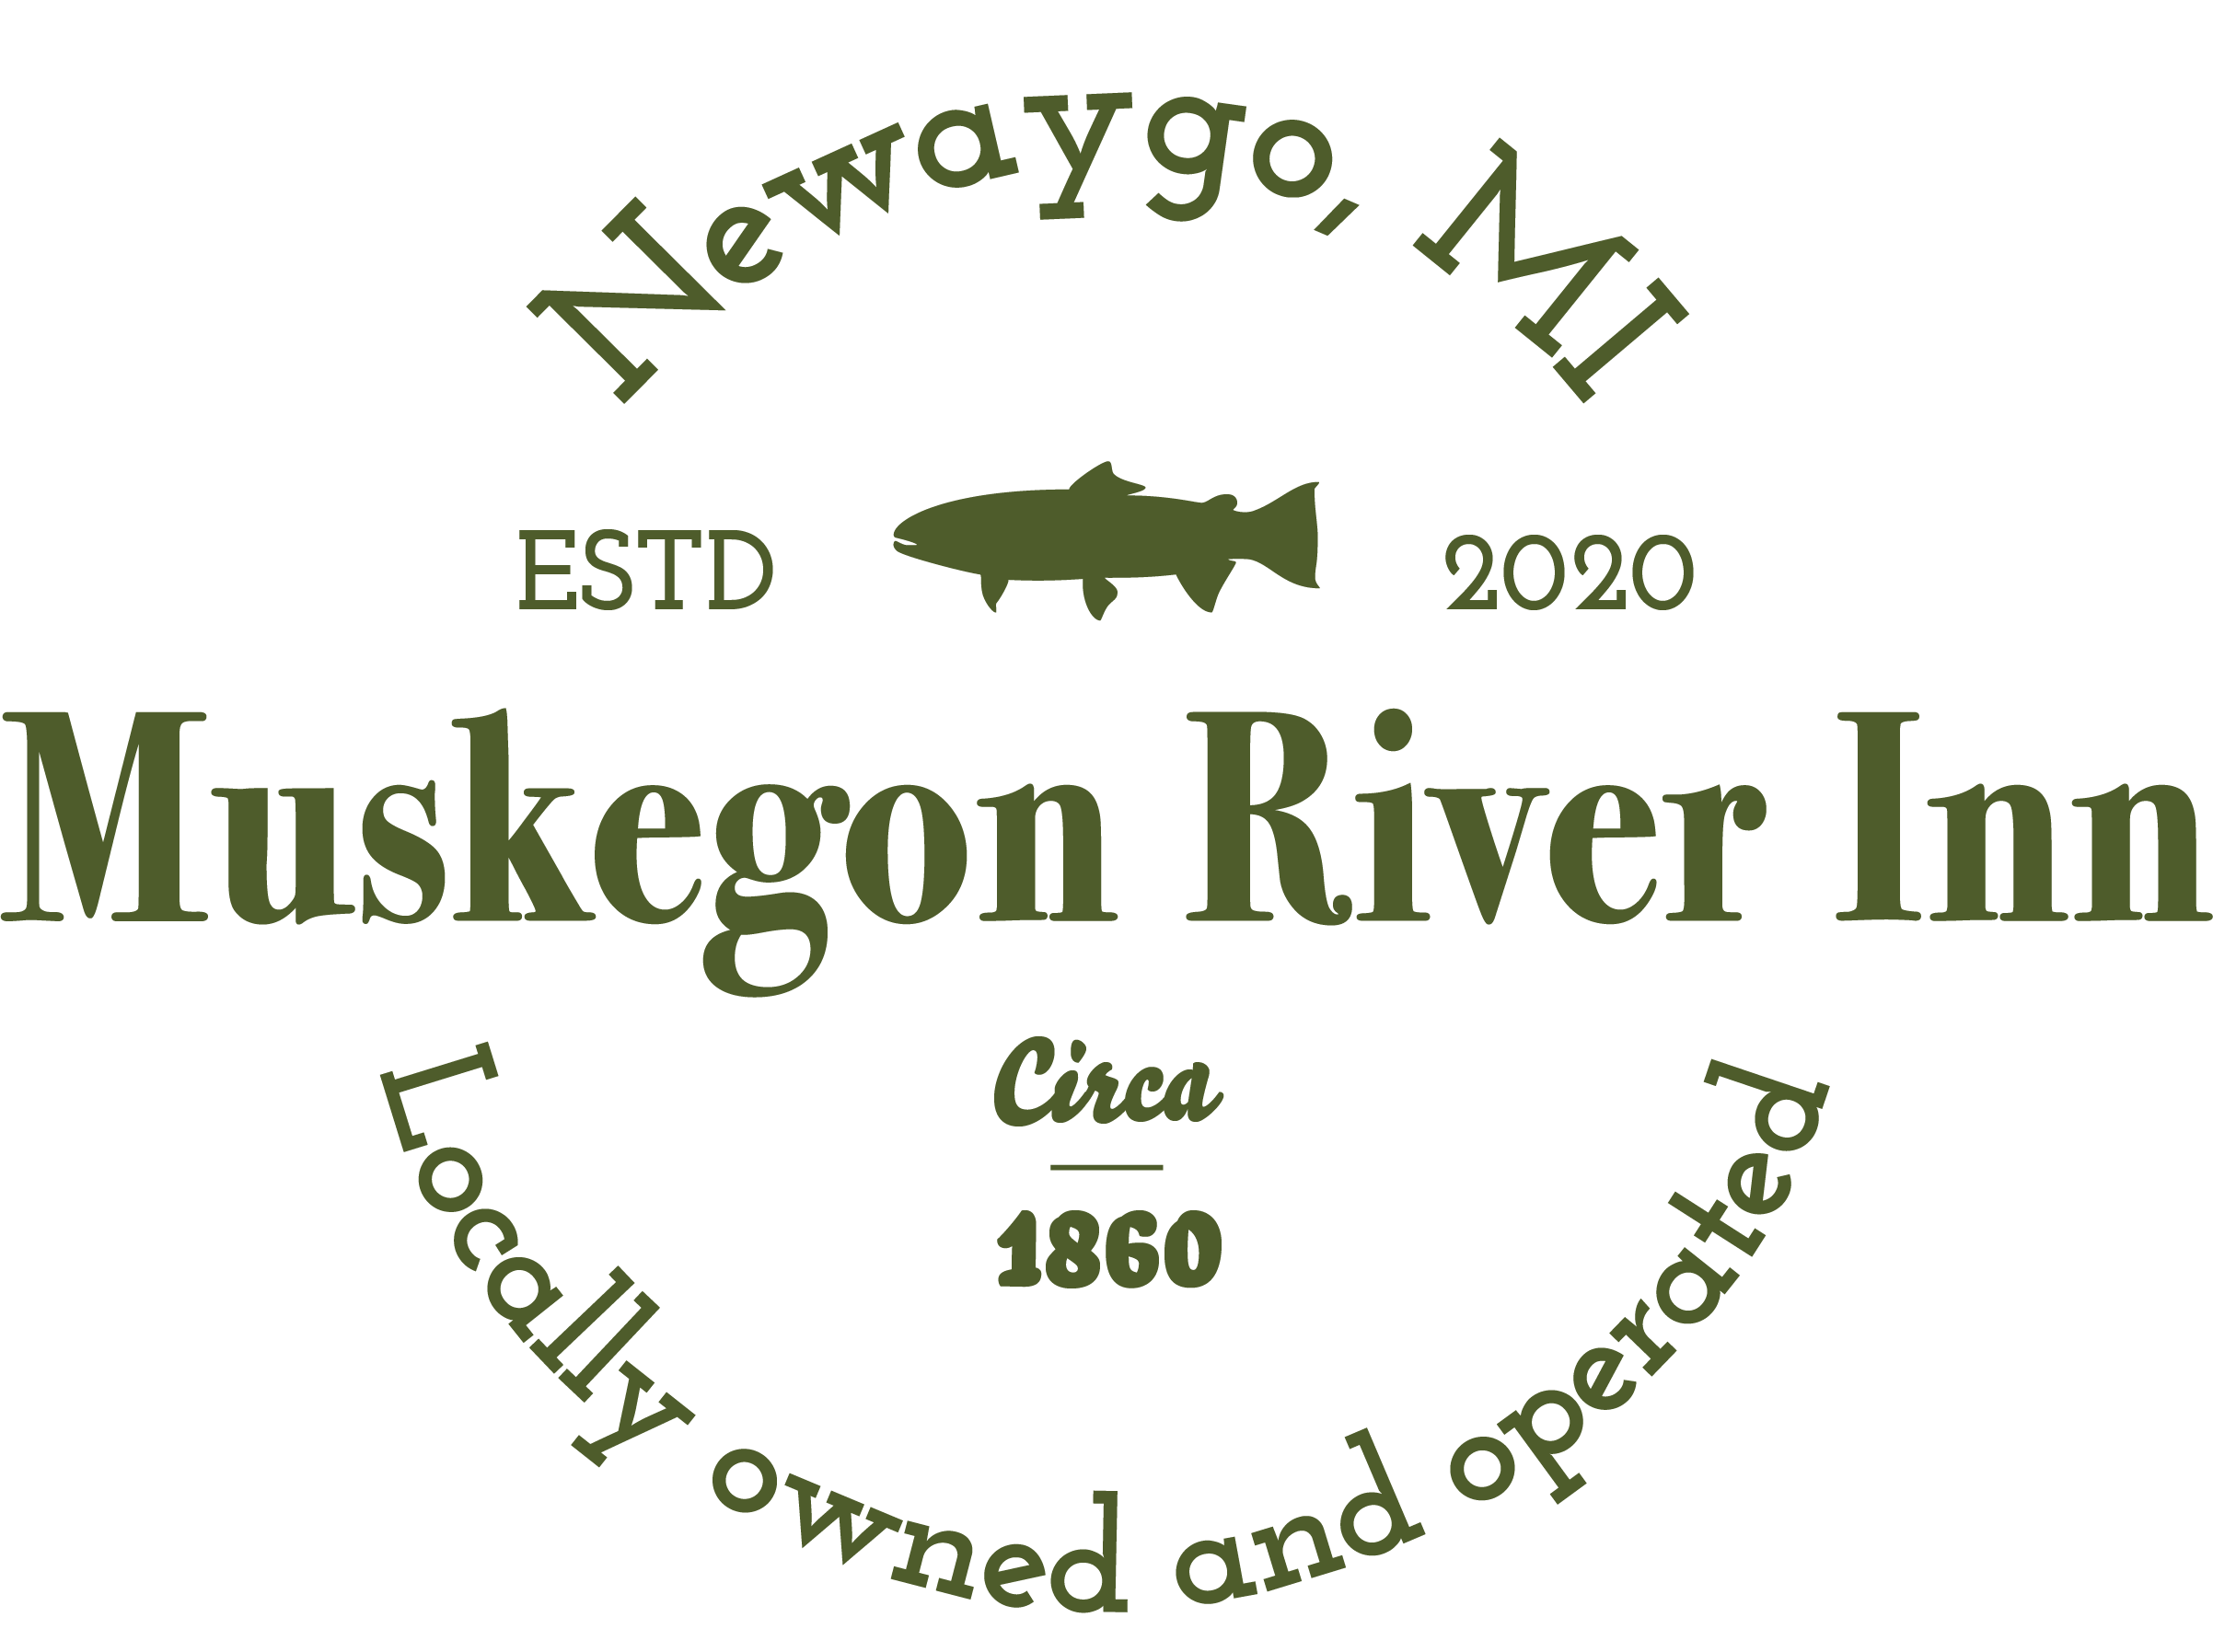 Muskegon River Inn